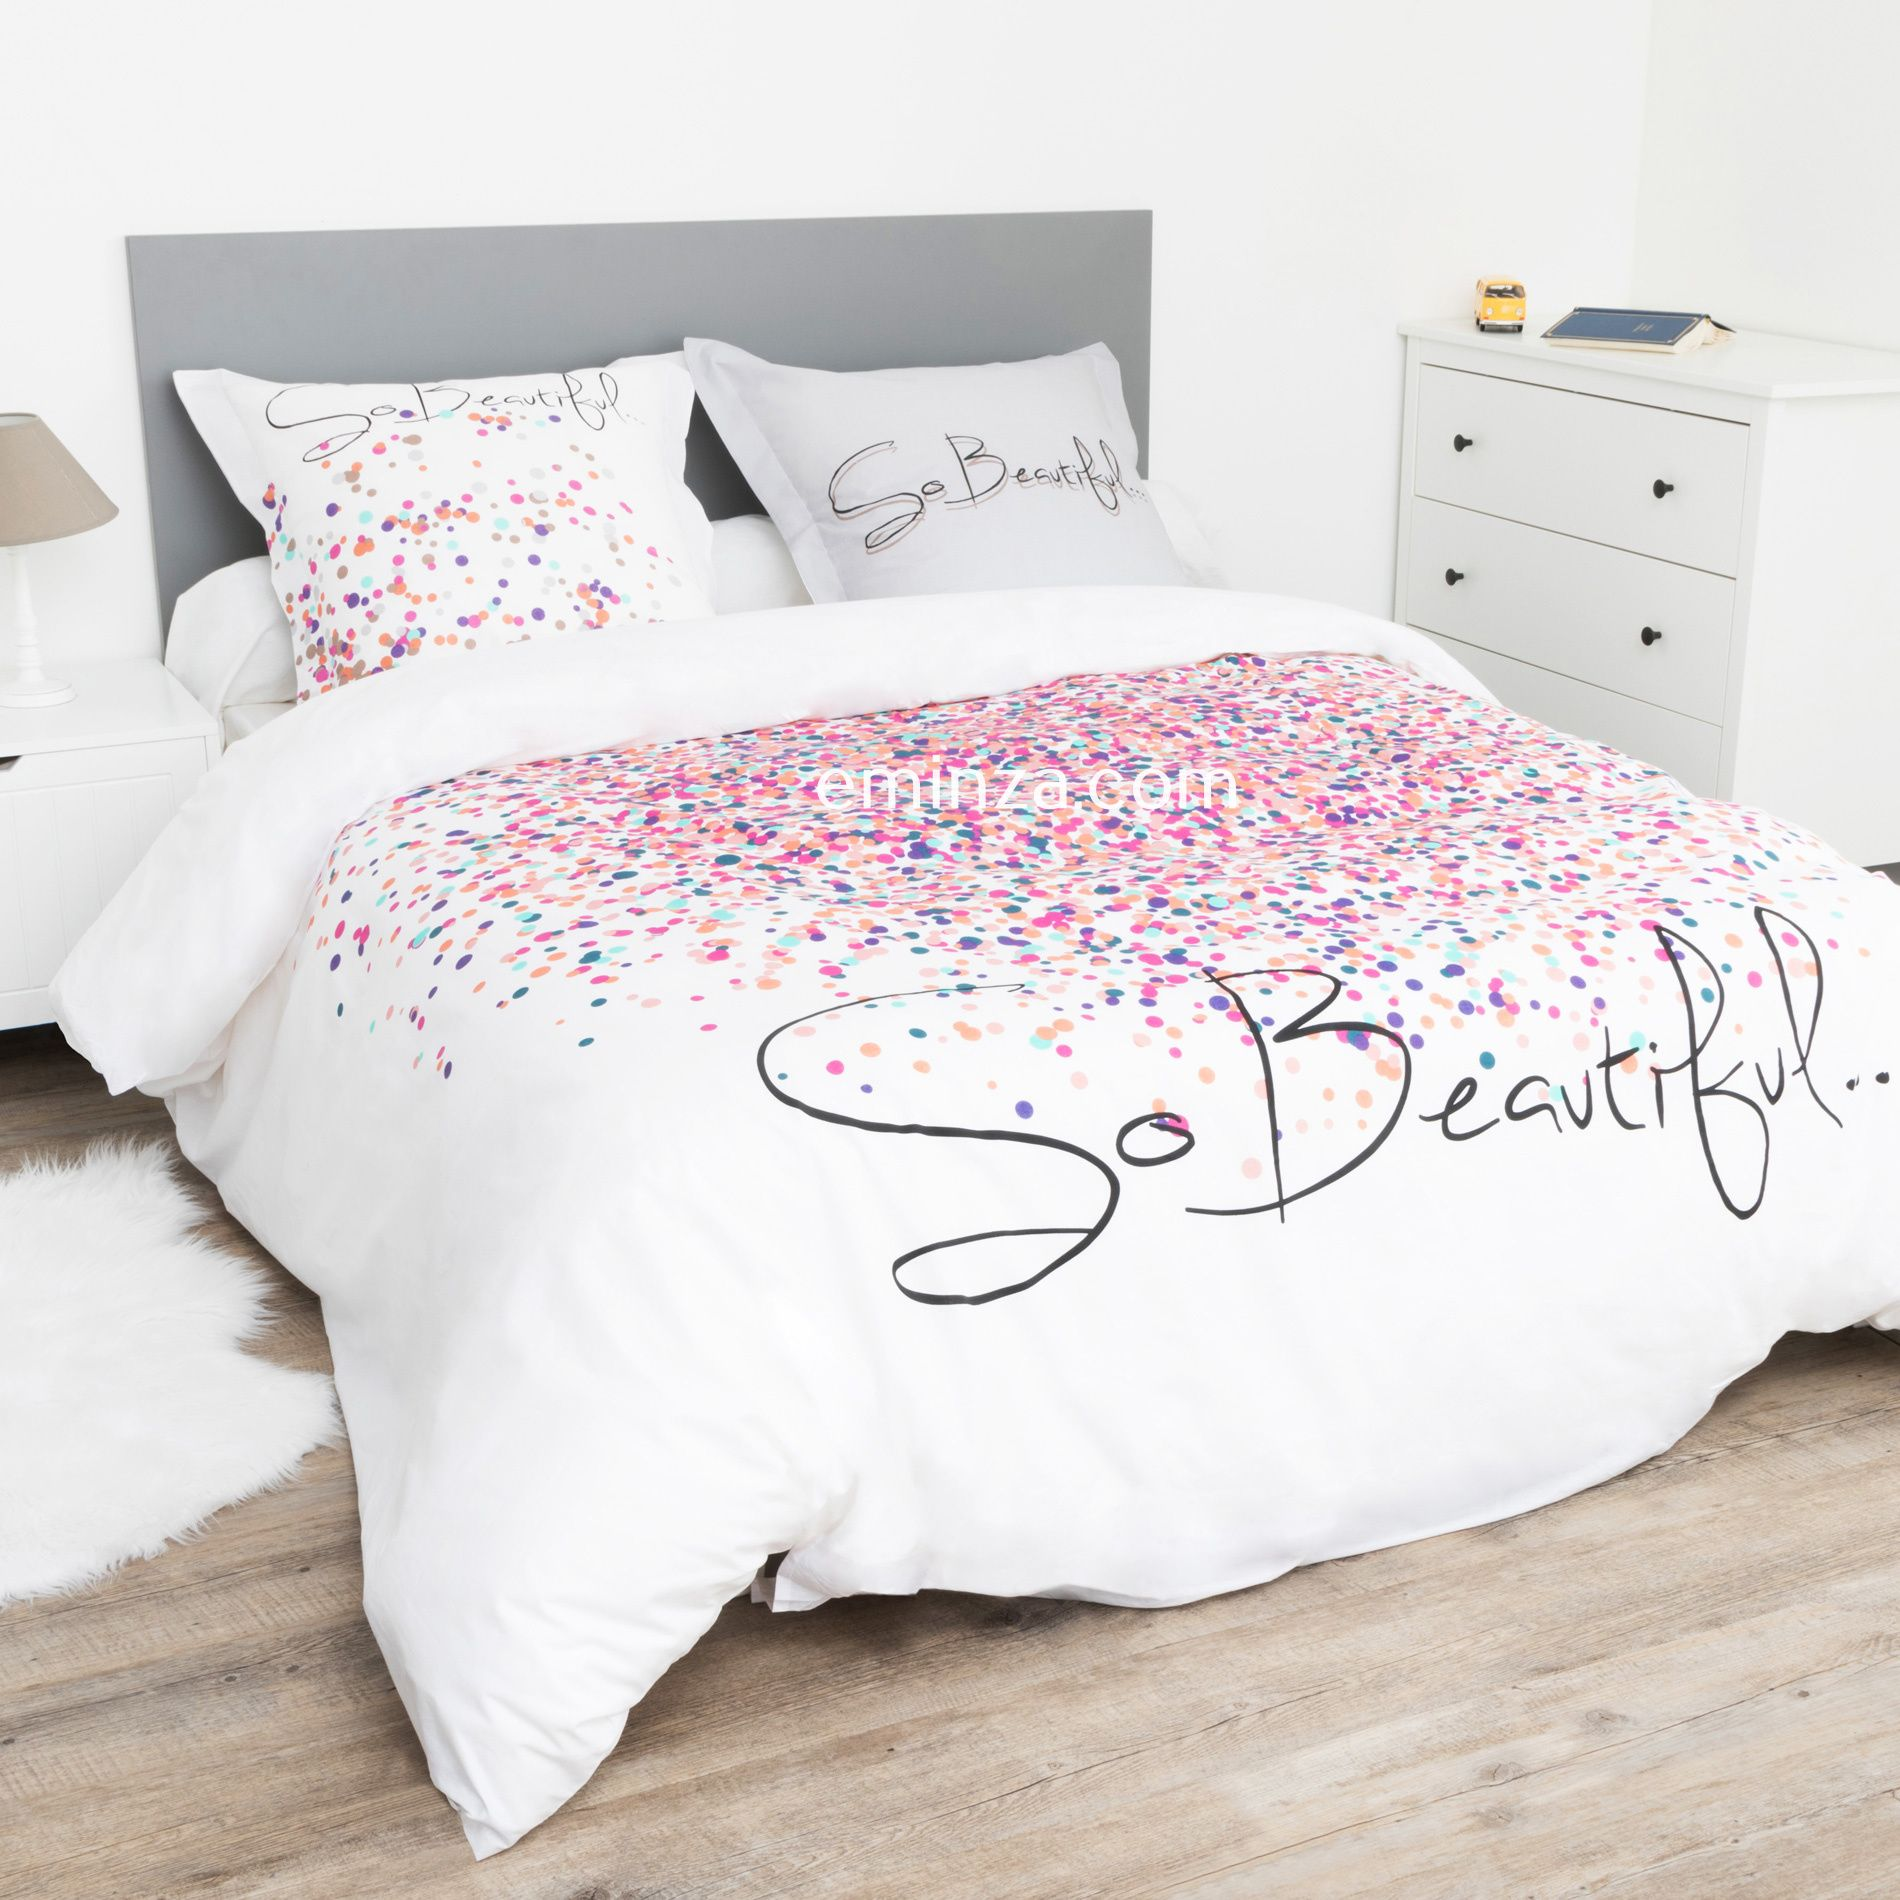 housse de couette et deux taies fireworks 100 coton 240 cm rose housse de couette eminza. Black Bedroom Furniture Sets. Home Design Ideas